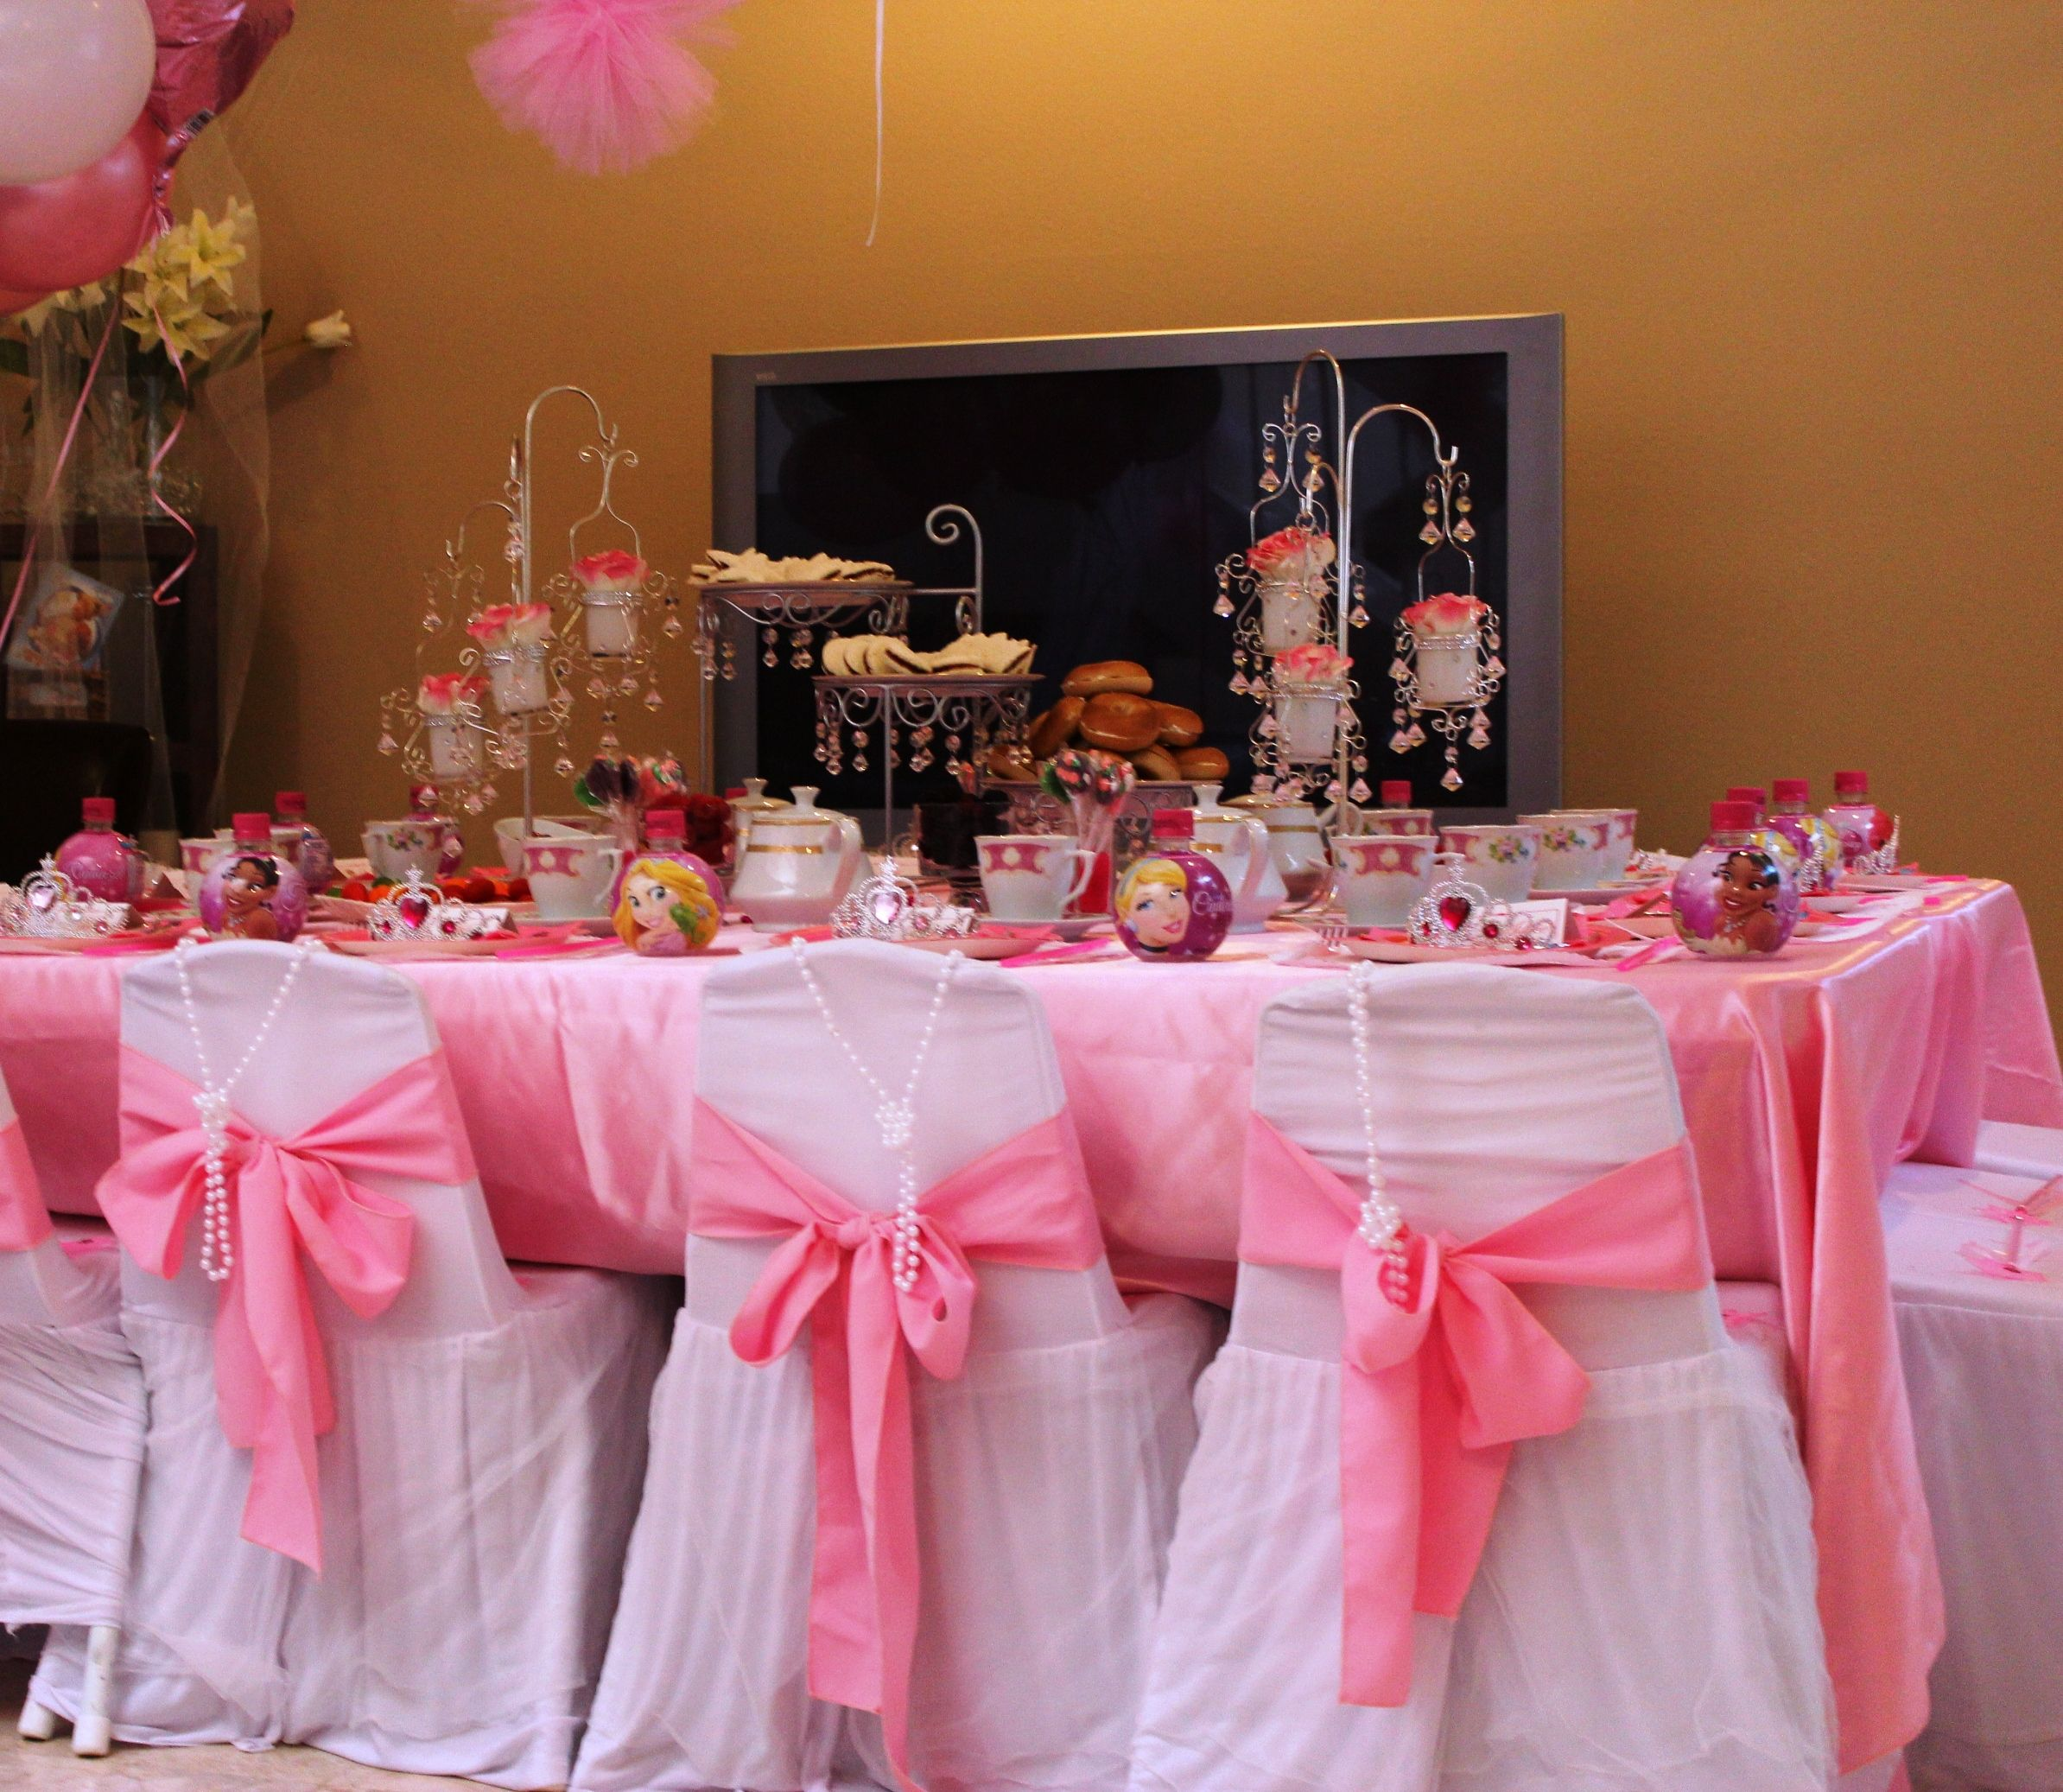 Princess Tea Party Ideas Kid Sized Tables And Chairs With Style Chair Covers Centerpieces China Pink White Color Theme